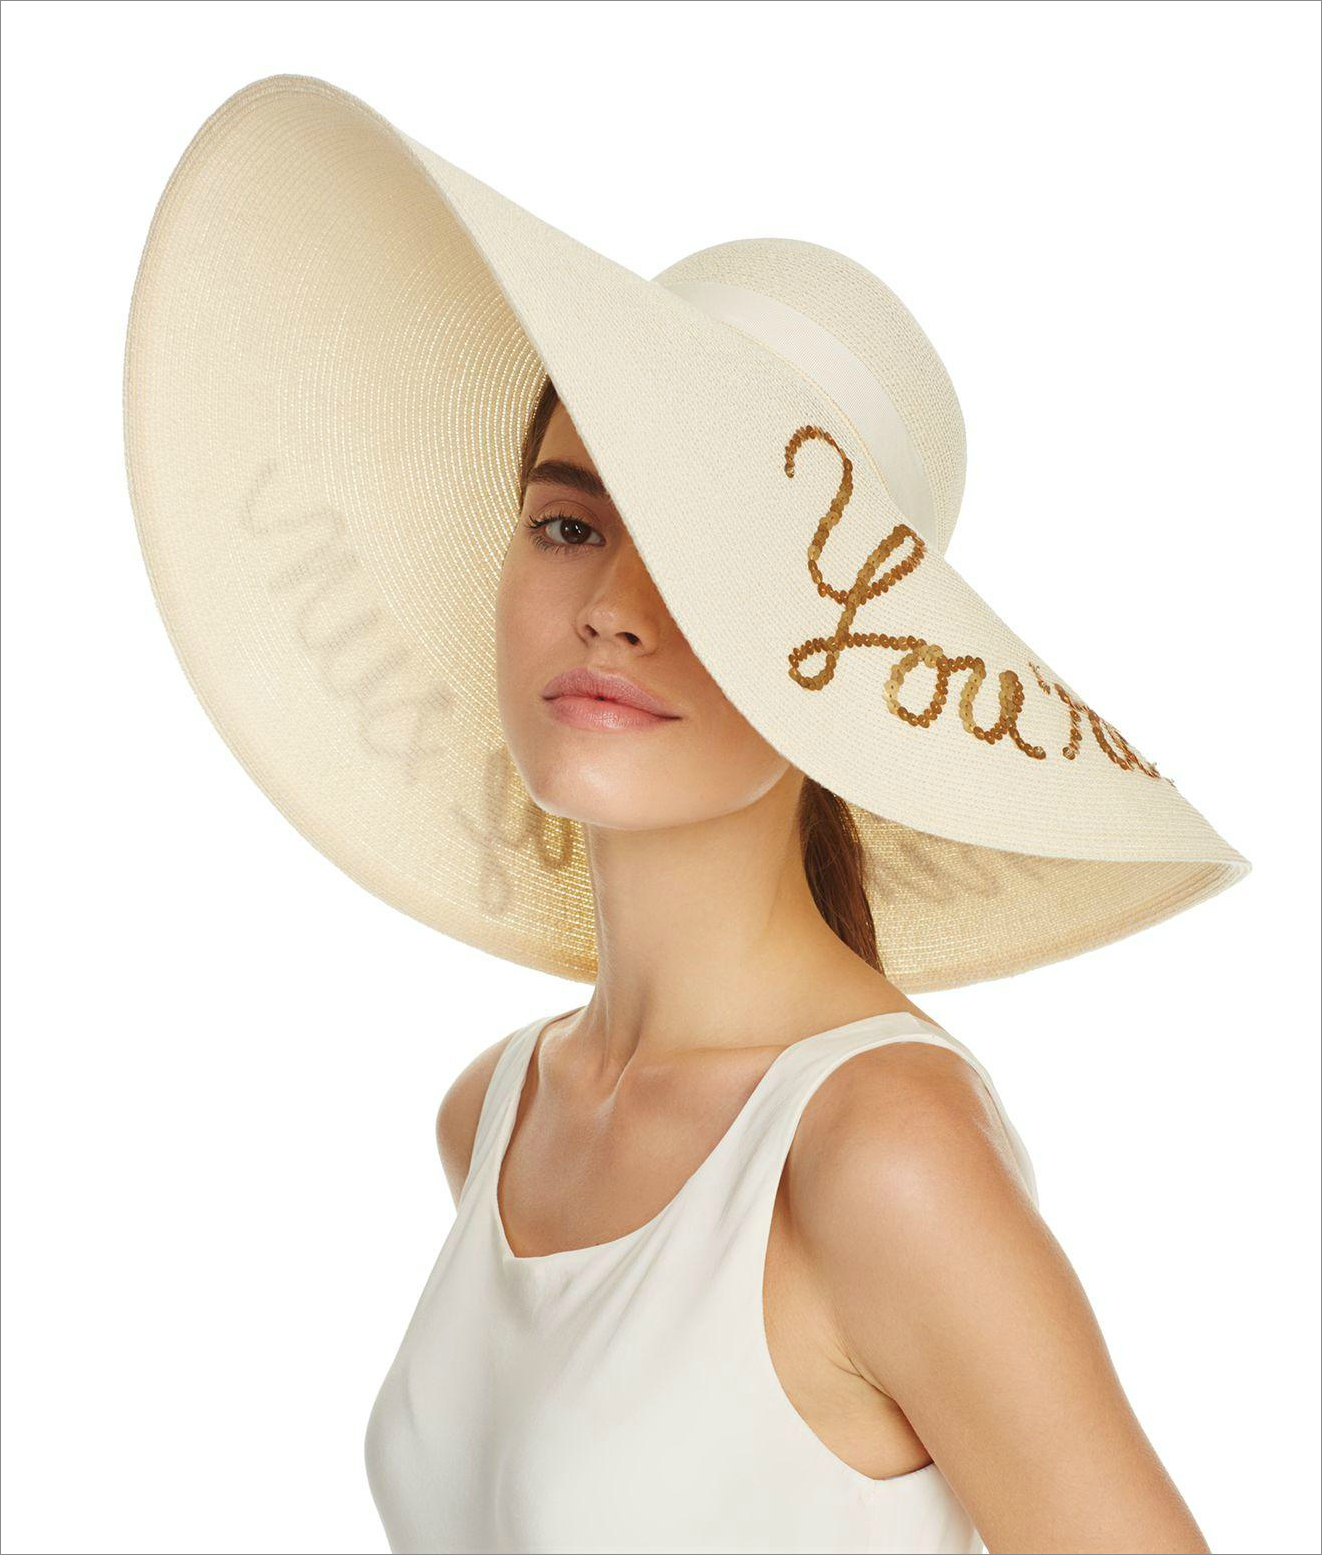 You're blocking my sun hat eugenia kim from bloomingdale's honeymoon outfit ideas